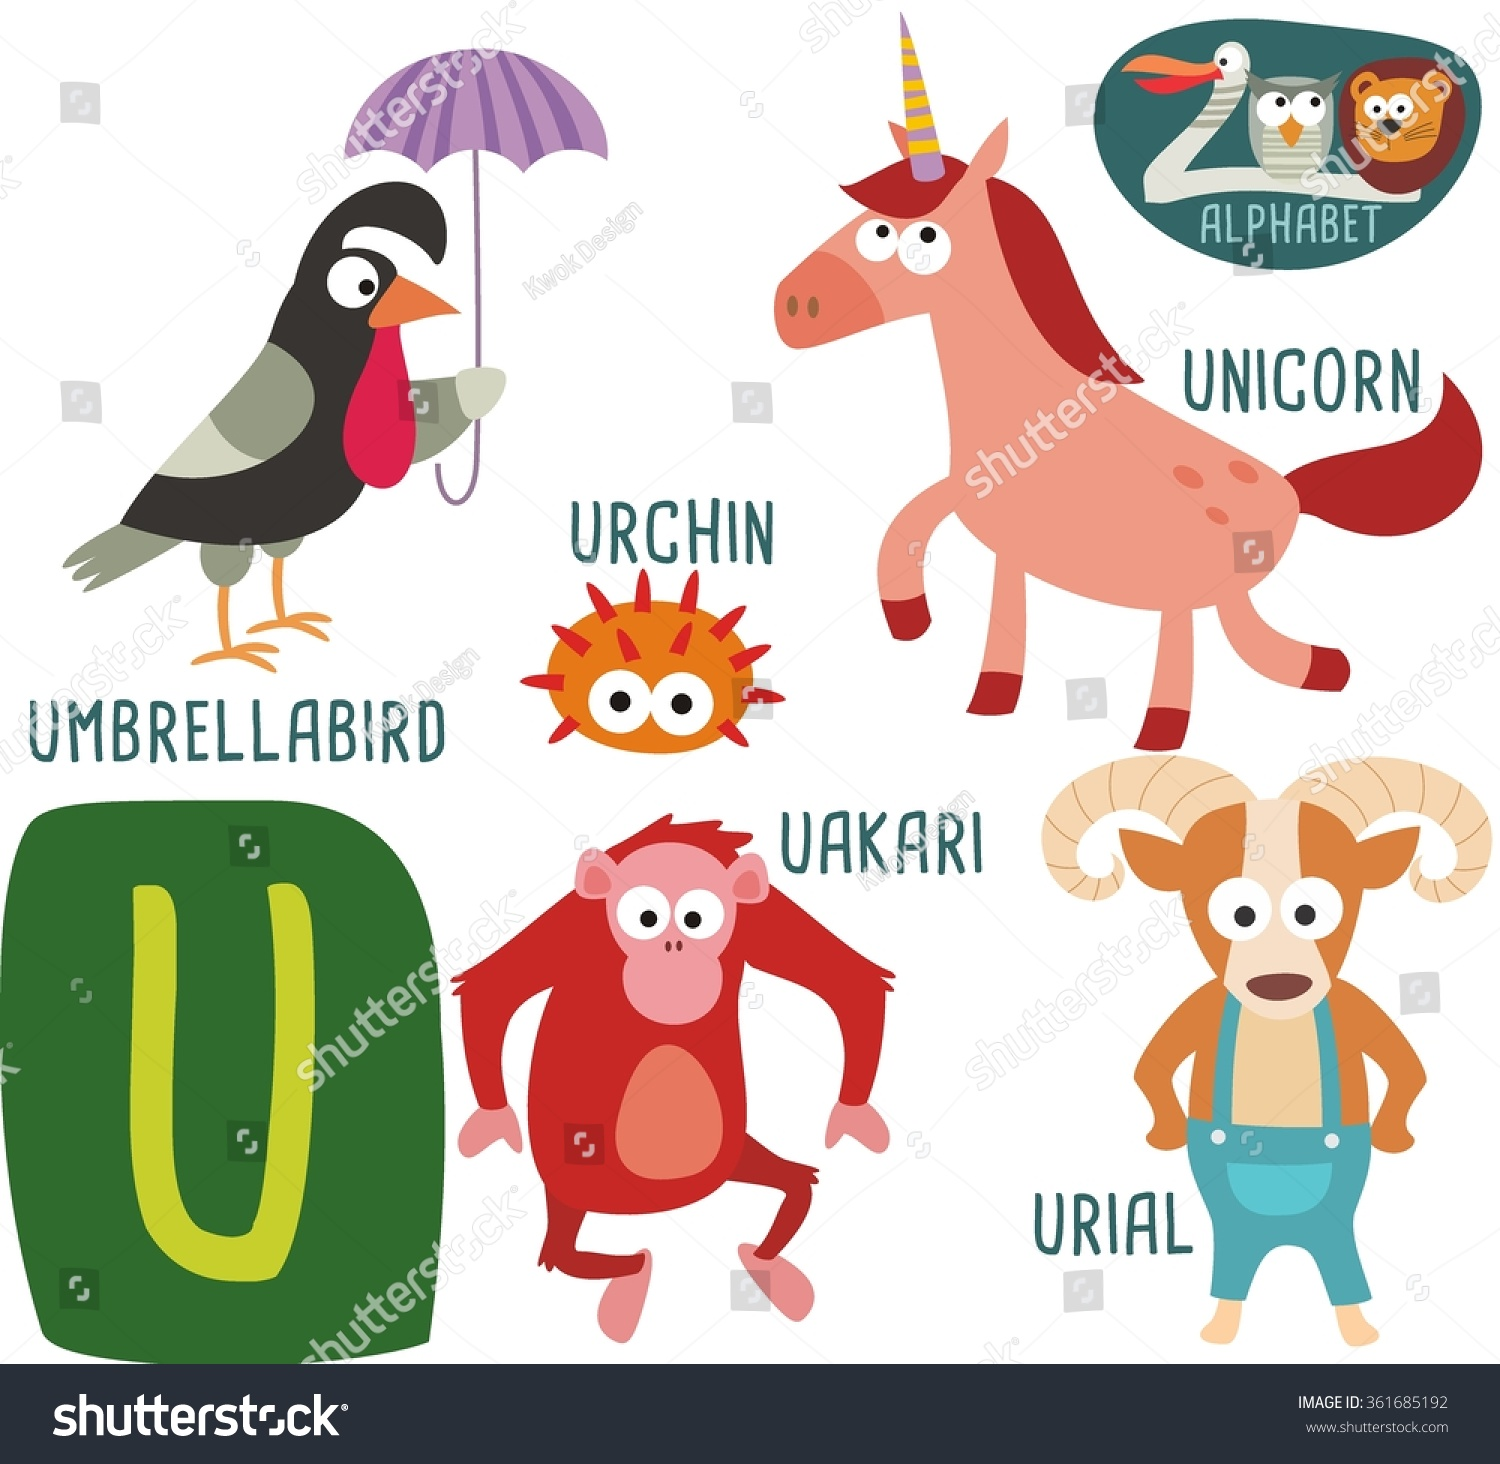 animals that start with the letter u zoo alphabet vector u letter stock vector 361685192 20462 | stock vector cute zoo alphabet in vector u letter for umbrella bird unicorn urchin urial uakari funny 361685192